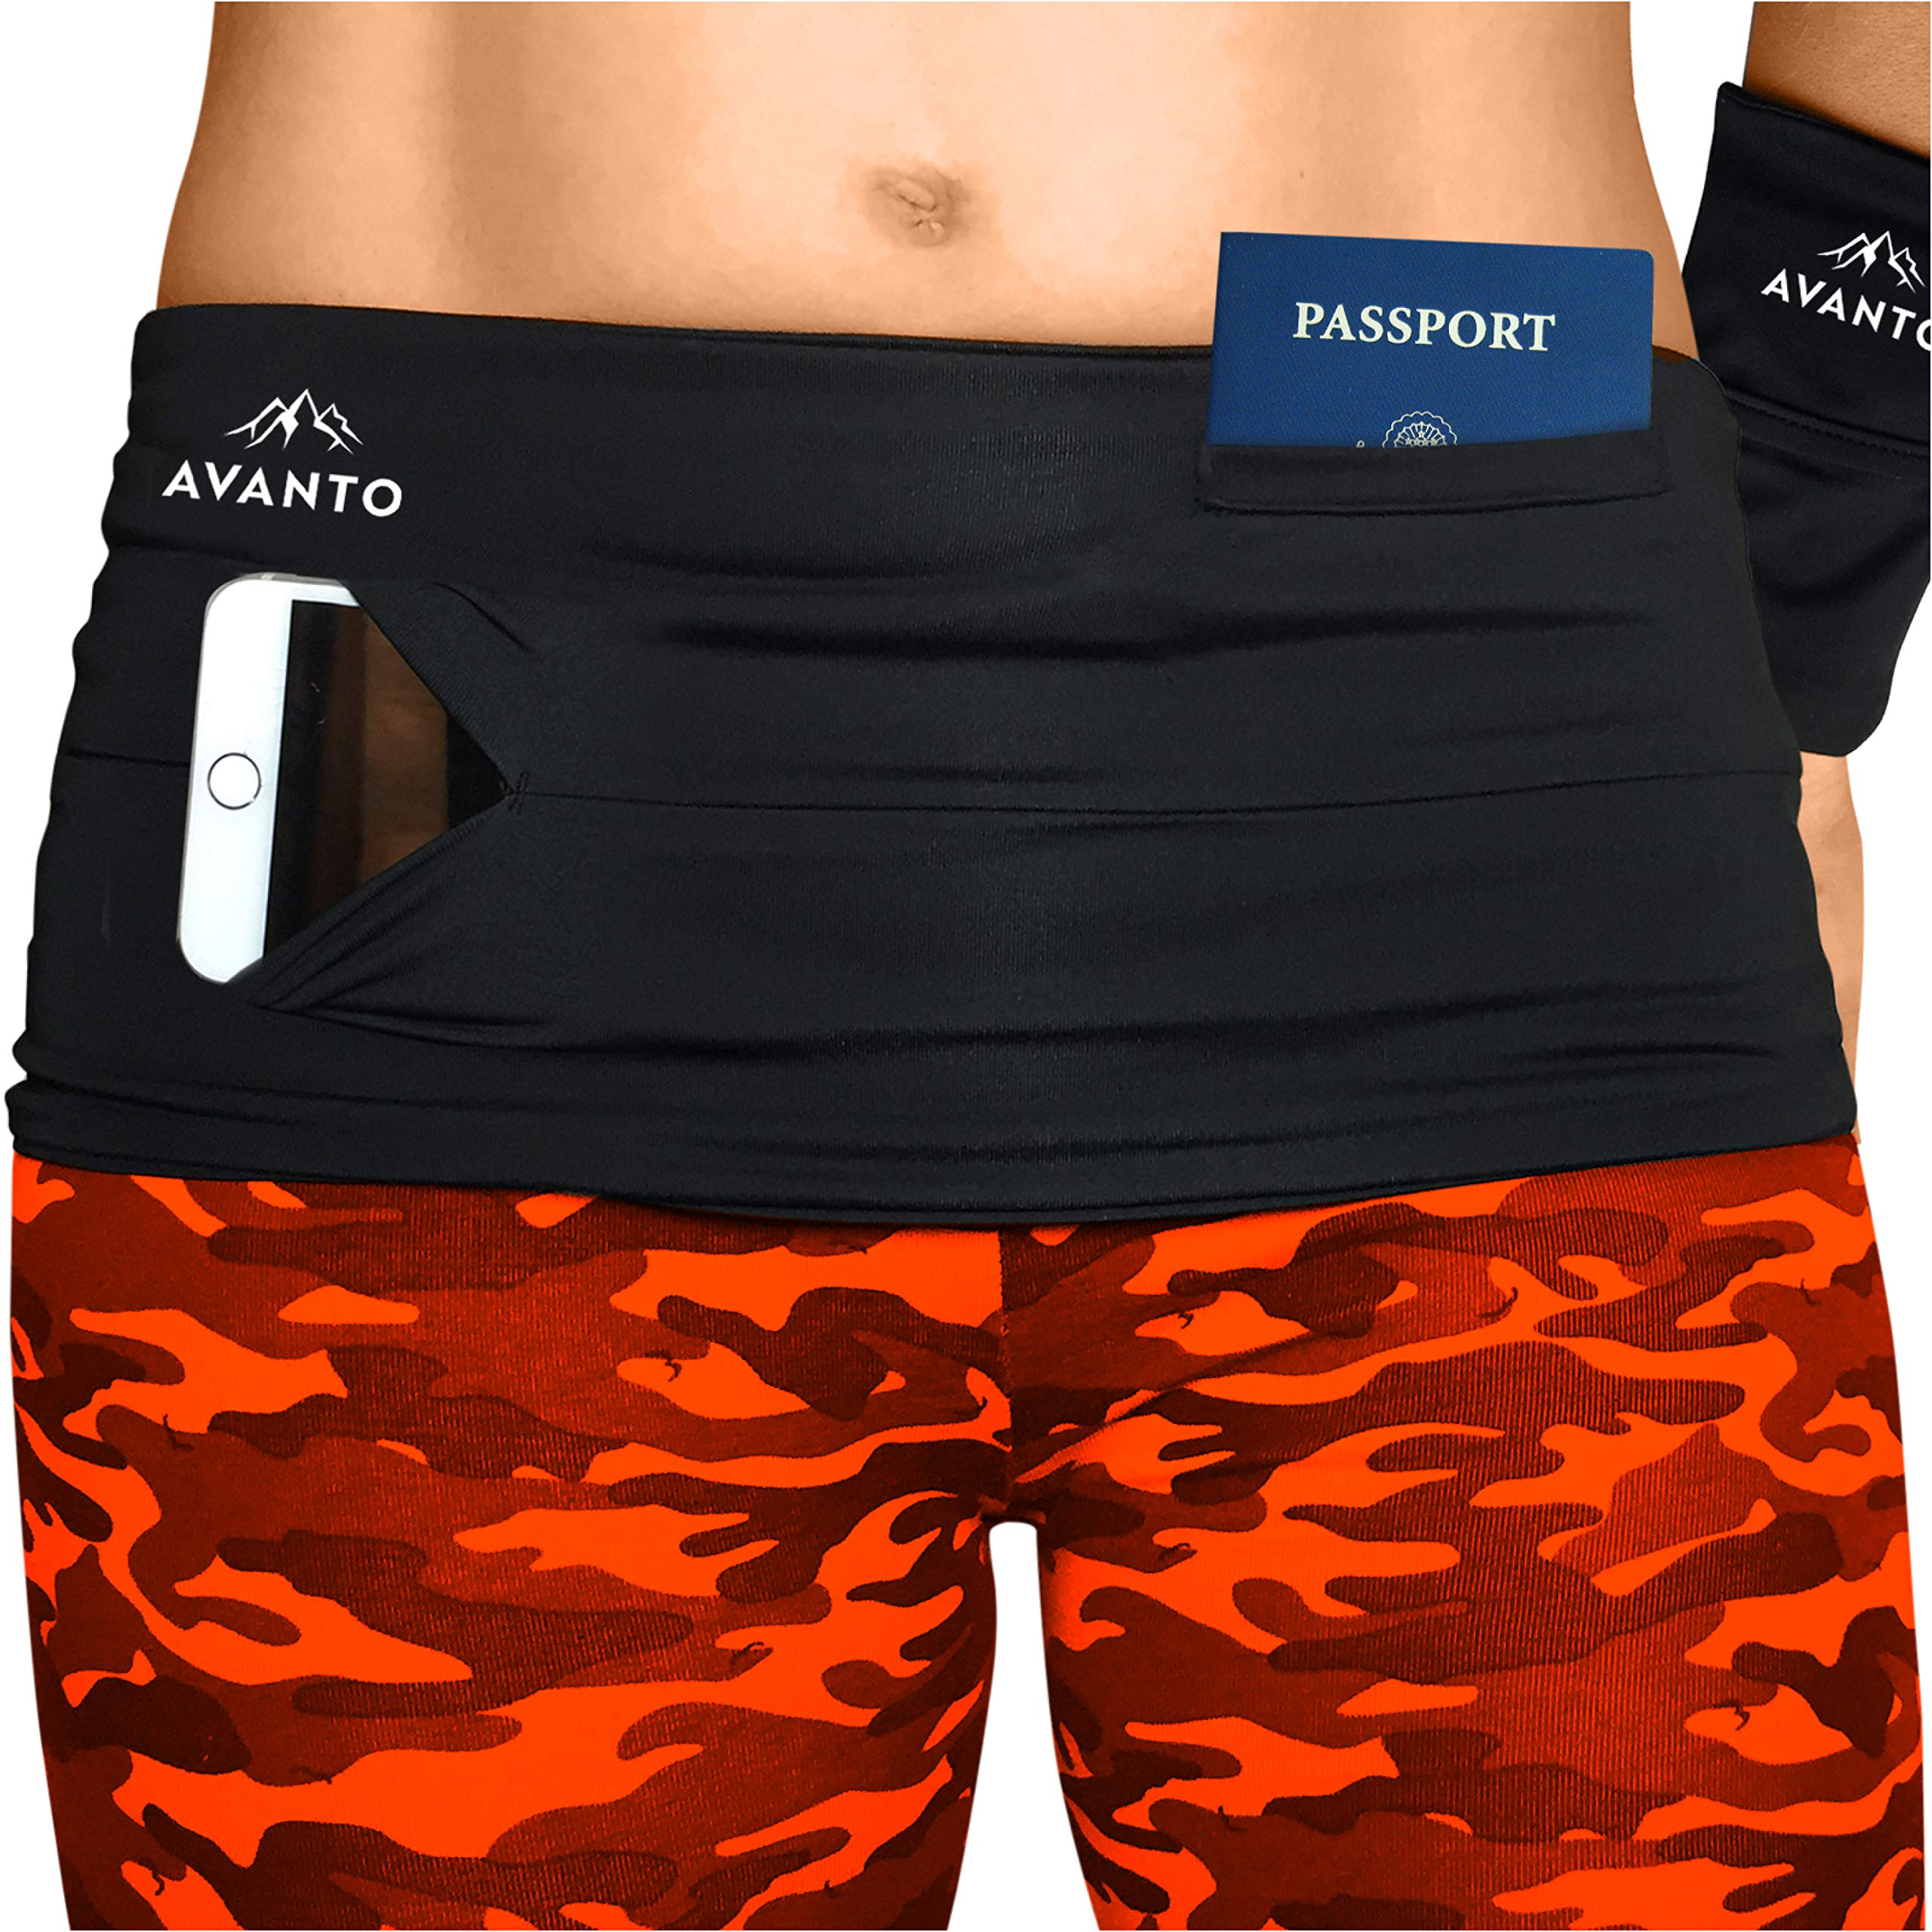 Avanto Lifestyle Slim Fit Travel Money Belt with Free Wrist Wallet, Running Belt, Waist and Fanny Pack for Travel, for Women and Men, Comfortable Like Second Skin, Black, M by Avanto Lifestyle